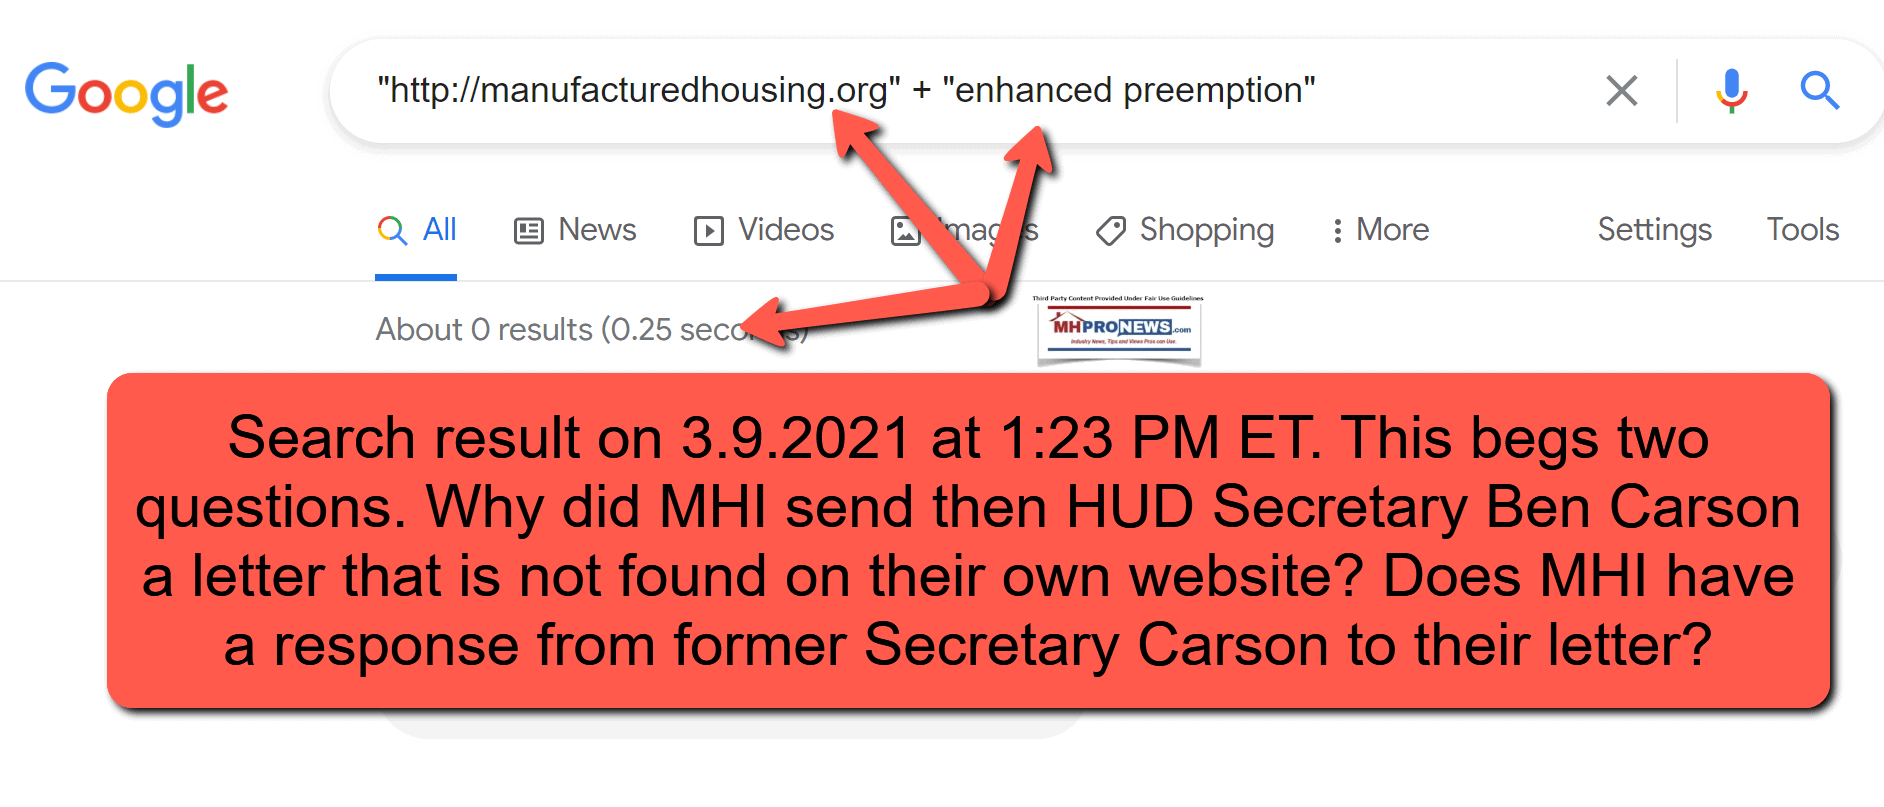 ManufacturedHousingInstituteWebsiteGoogleSearch3.9.2021EnhancedPreemptionMHProNewsFactCheck